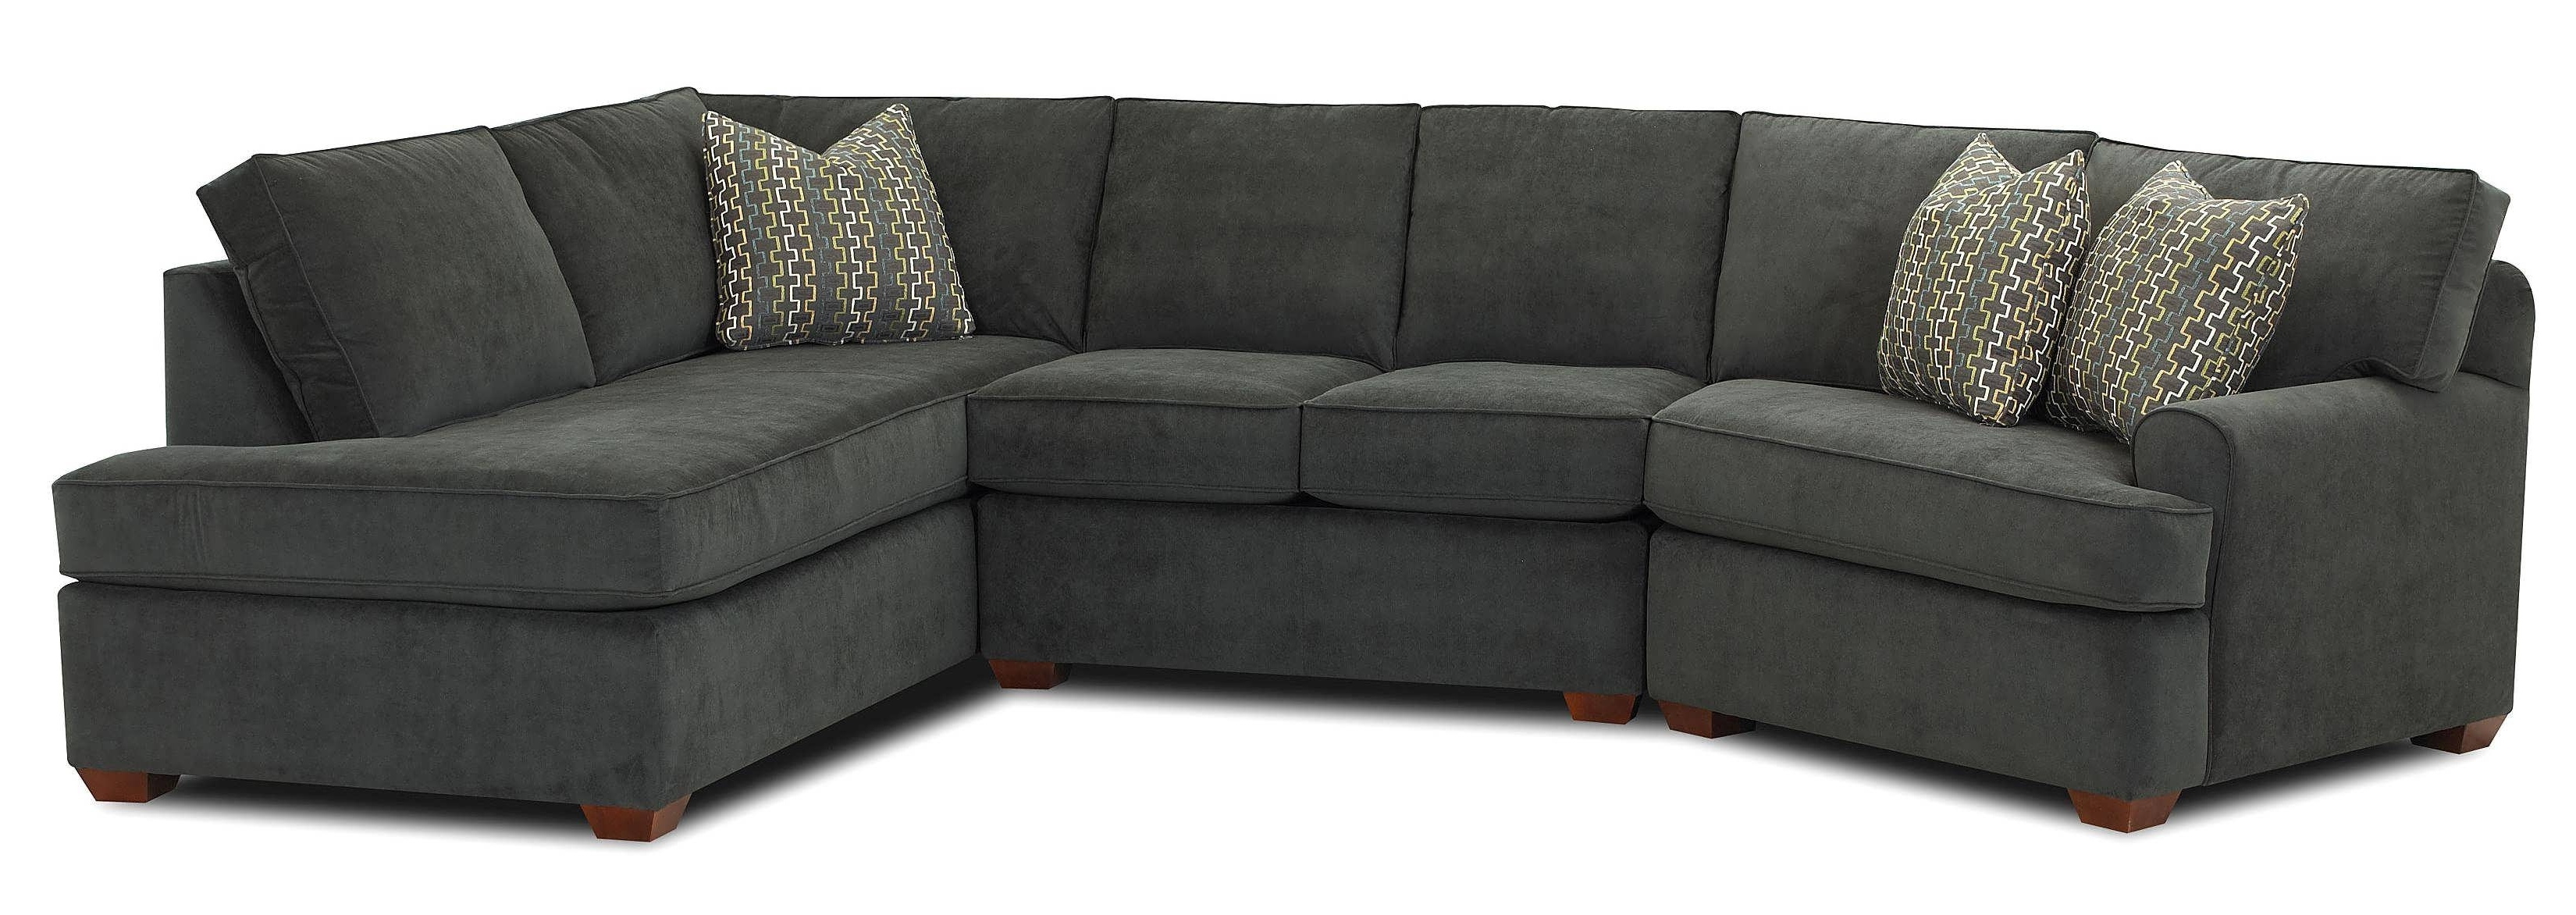 Best And Newest Sofa : L Sectional Couch Double Chaise Sectional L Shaped Couch With Regard To Gray Chaises (View 11 of 15)